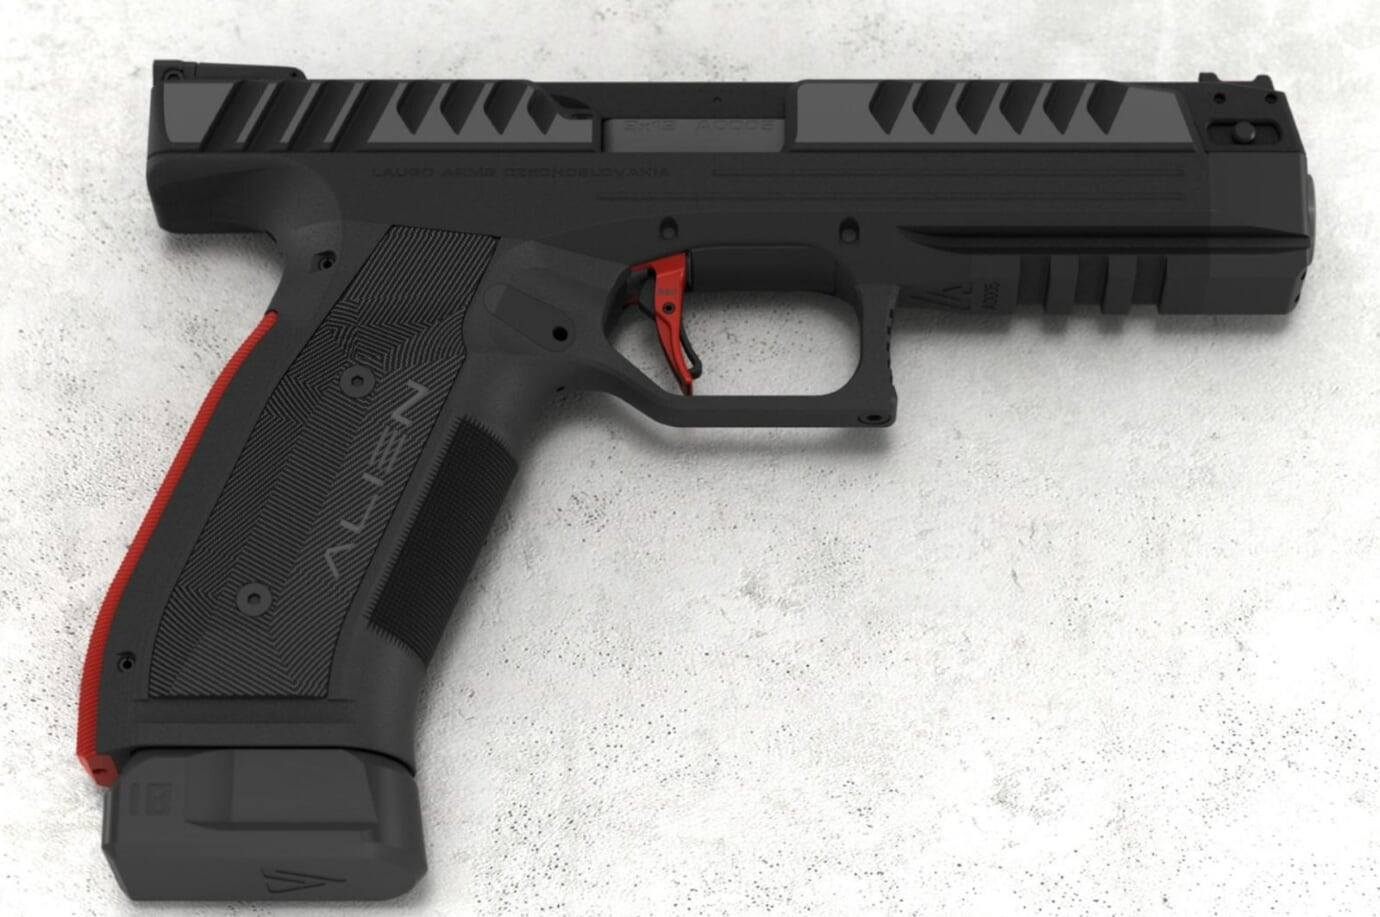 Alien Pistol From Laugo Arms in 9mm Teased | RECOIL